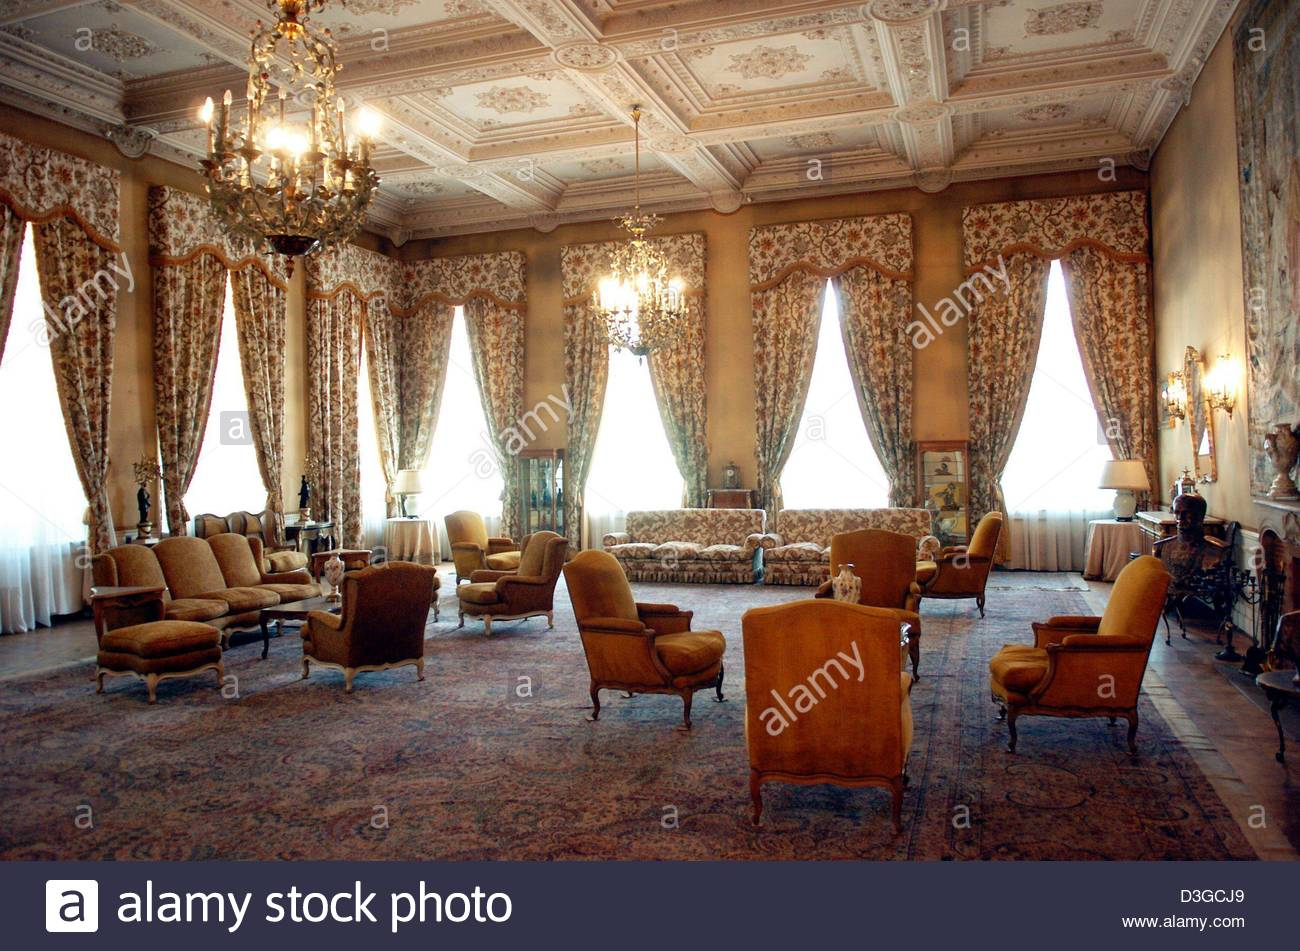 White Palace Tehran, dpa) - View of a luxurious reception hall in the White Palace of ...